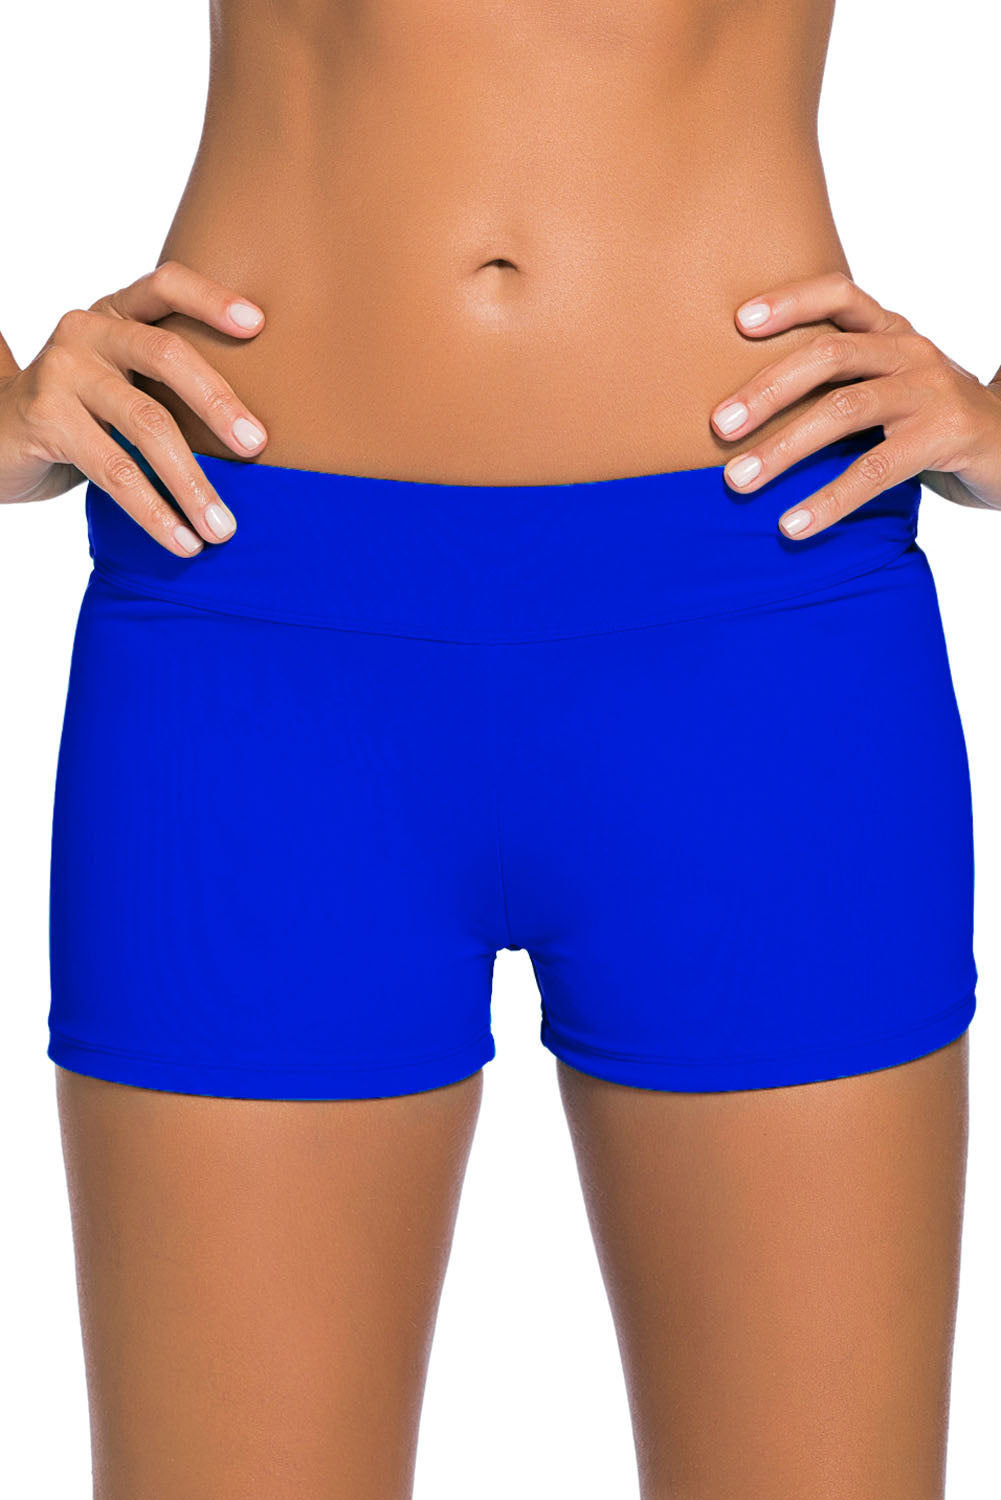 Royal Blue Wide Waistband Swimsuit Bottom Shorts